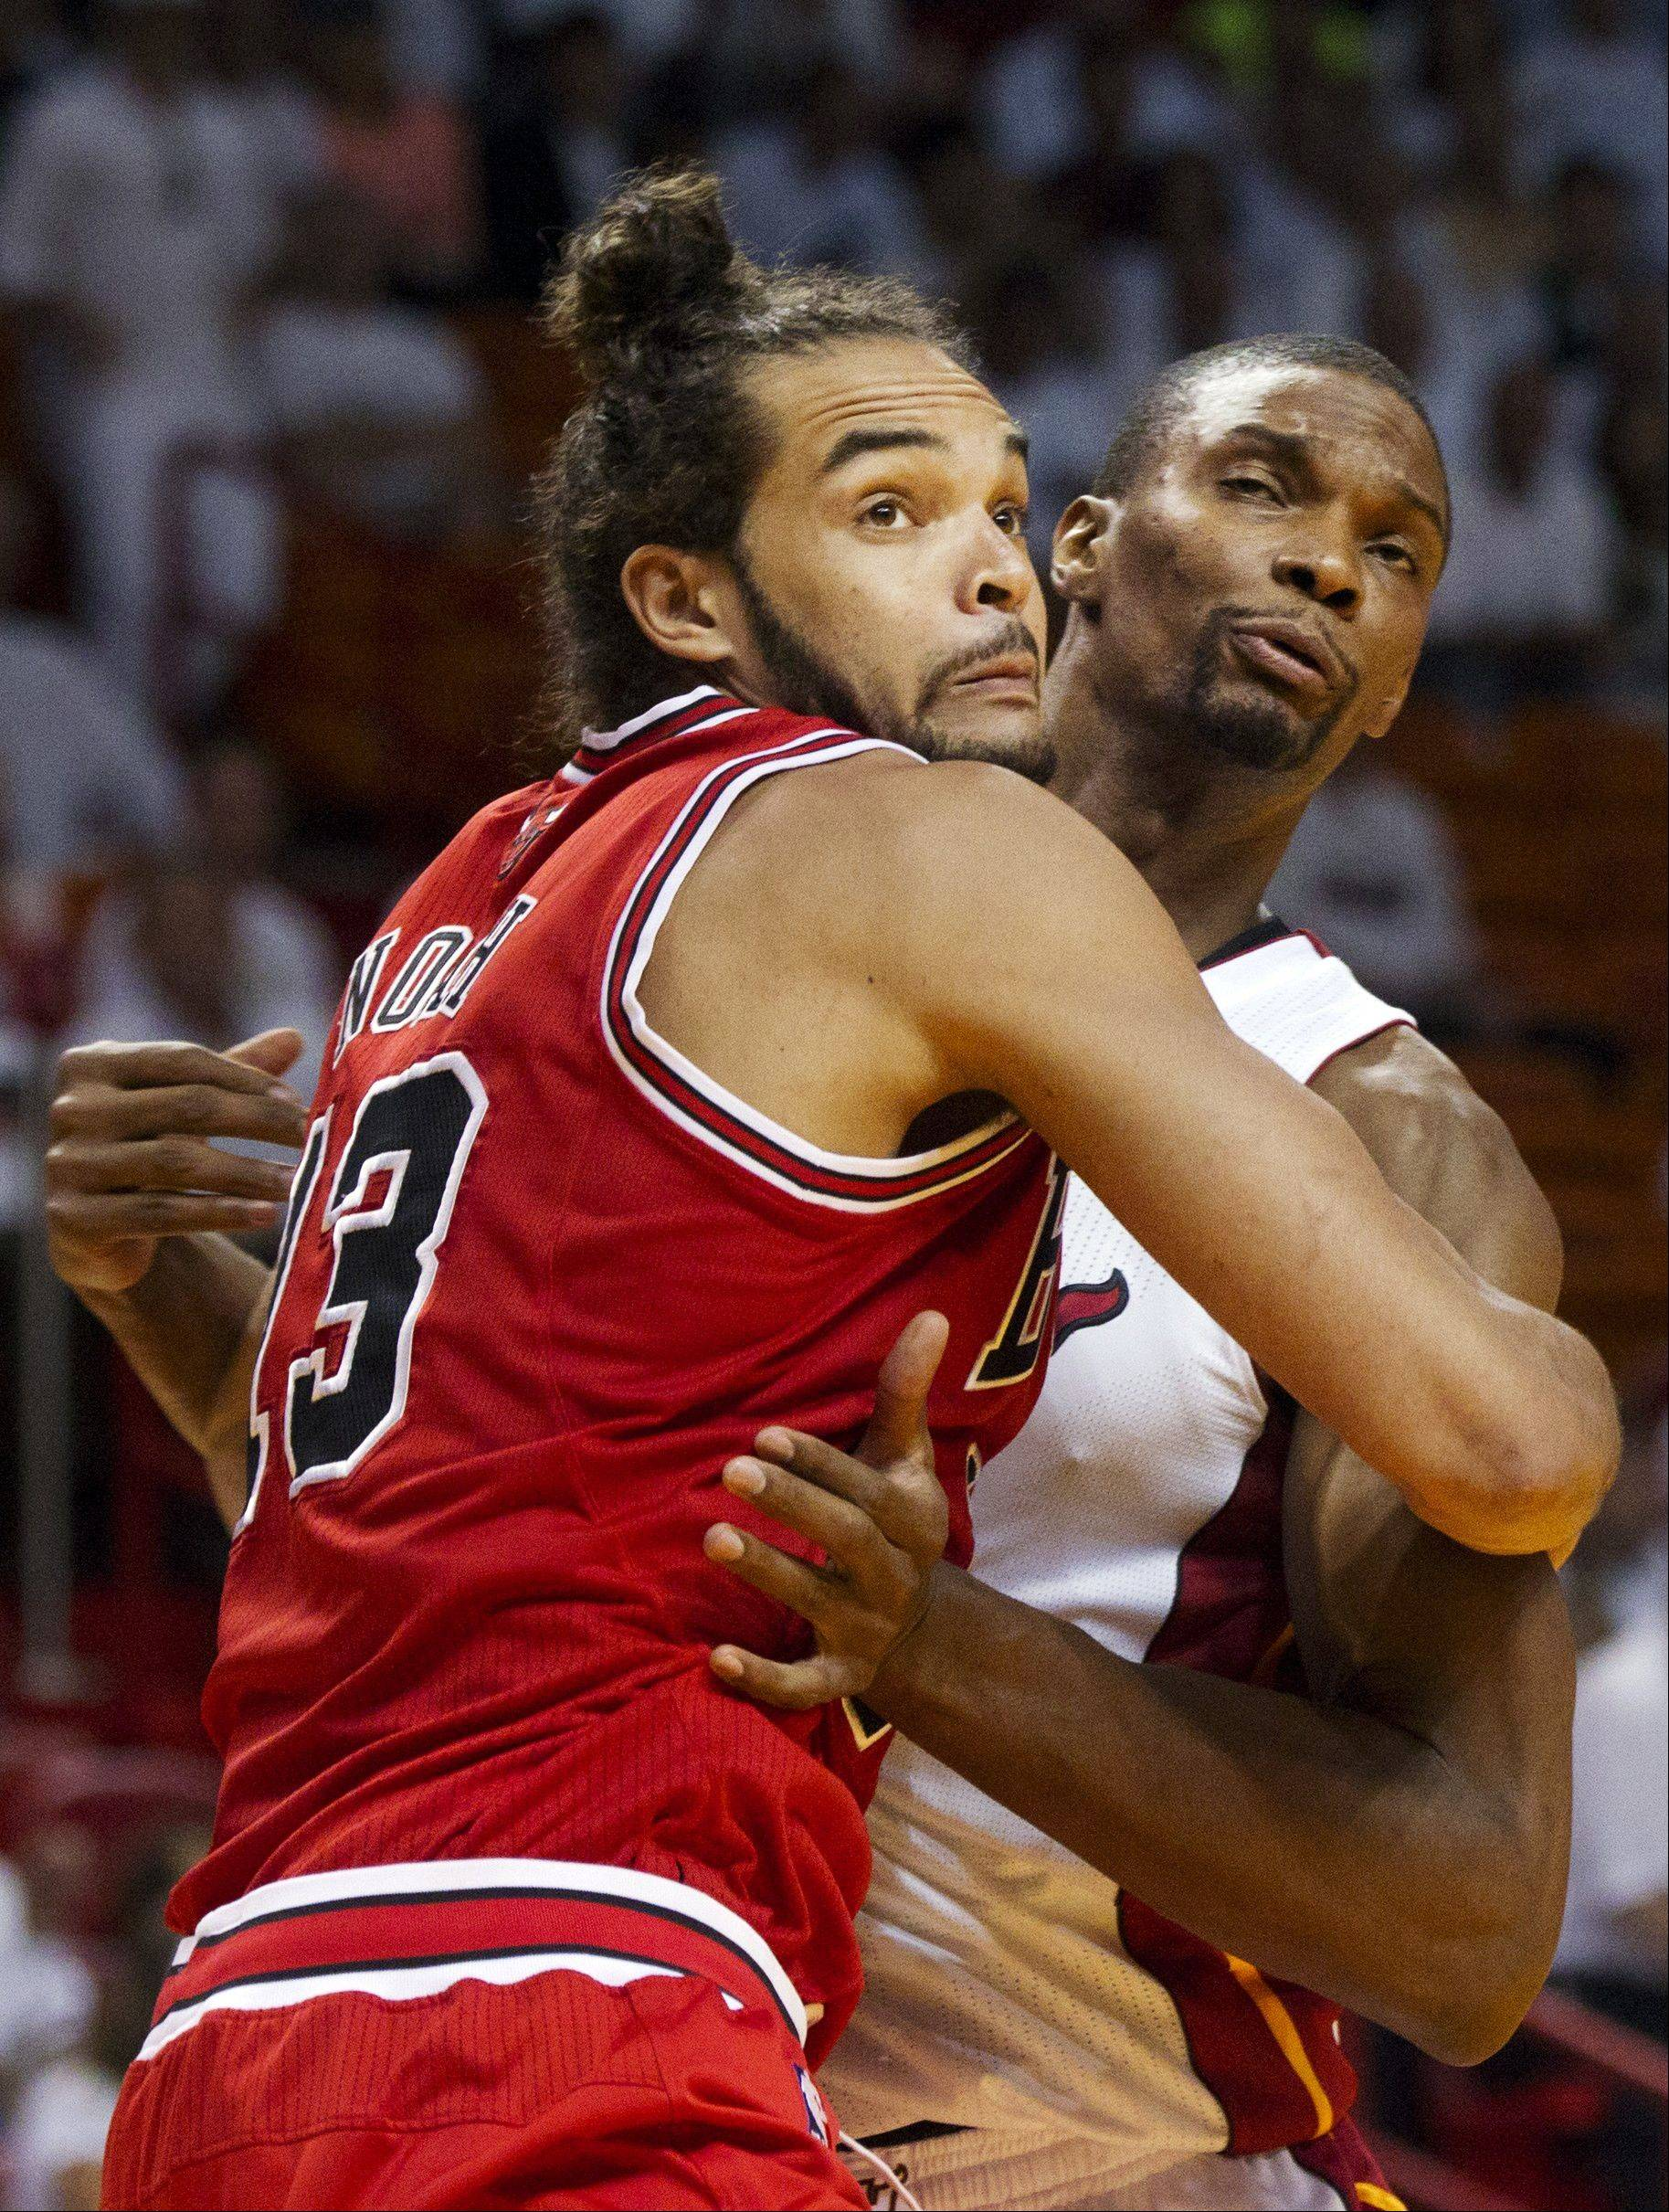 Joakim Noah and Miami Heat's Chris Bosh tangle while waiting for a rebound during Game 2 of their NBA basketball playoff series in the Eastern Conference semifinals on Wednesday, May 8, 2013, in Miami.